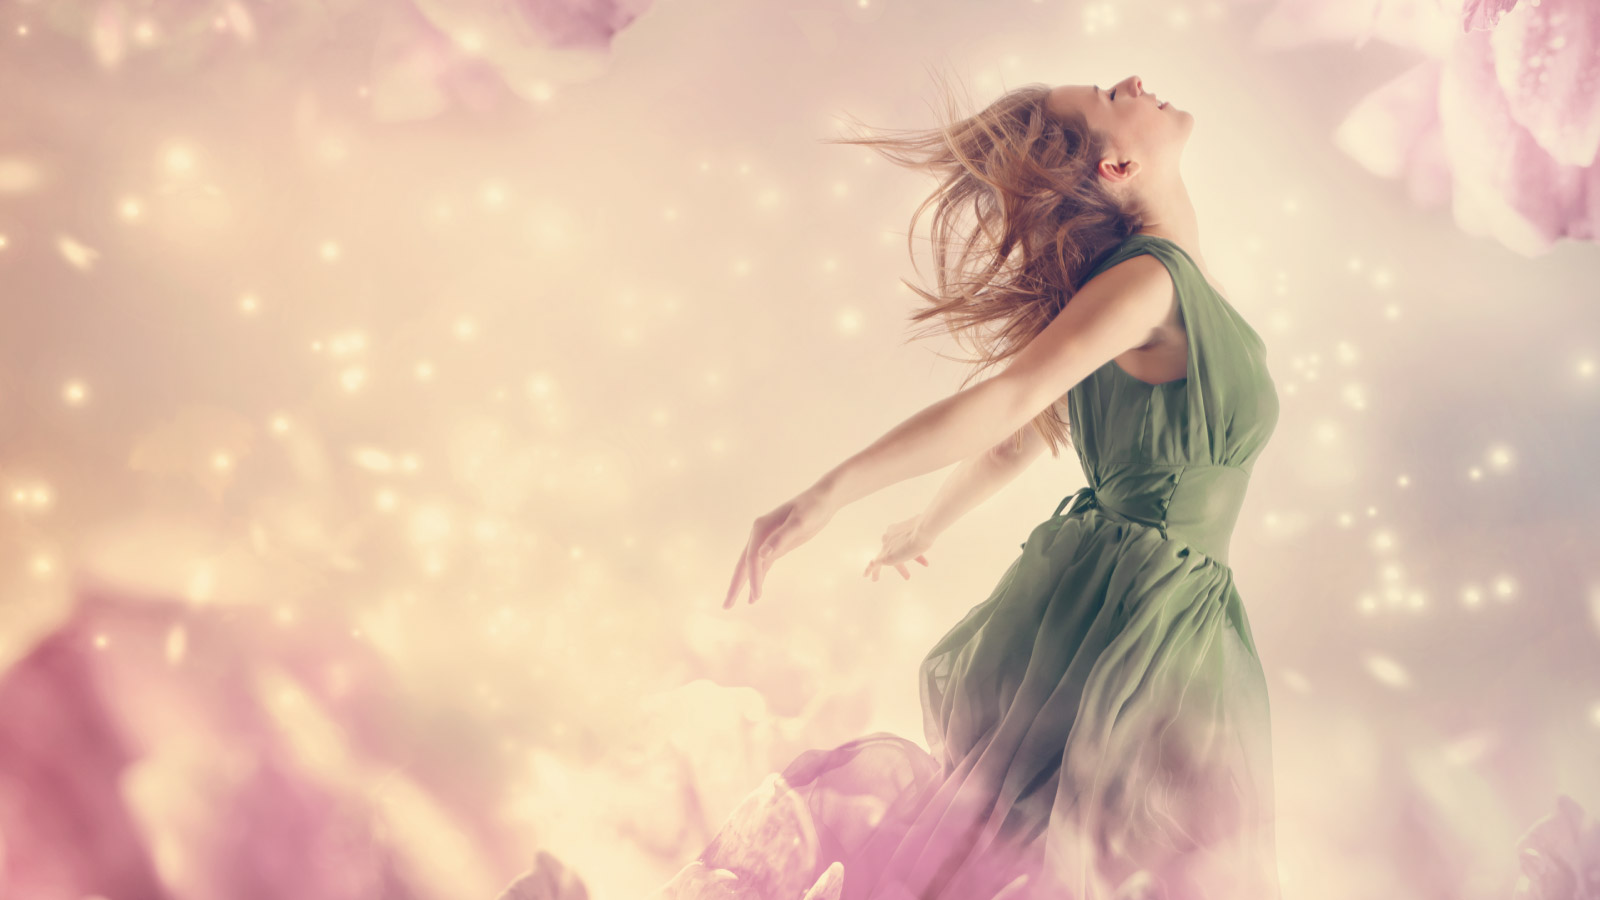 A girl easy flying over light flowers